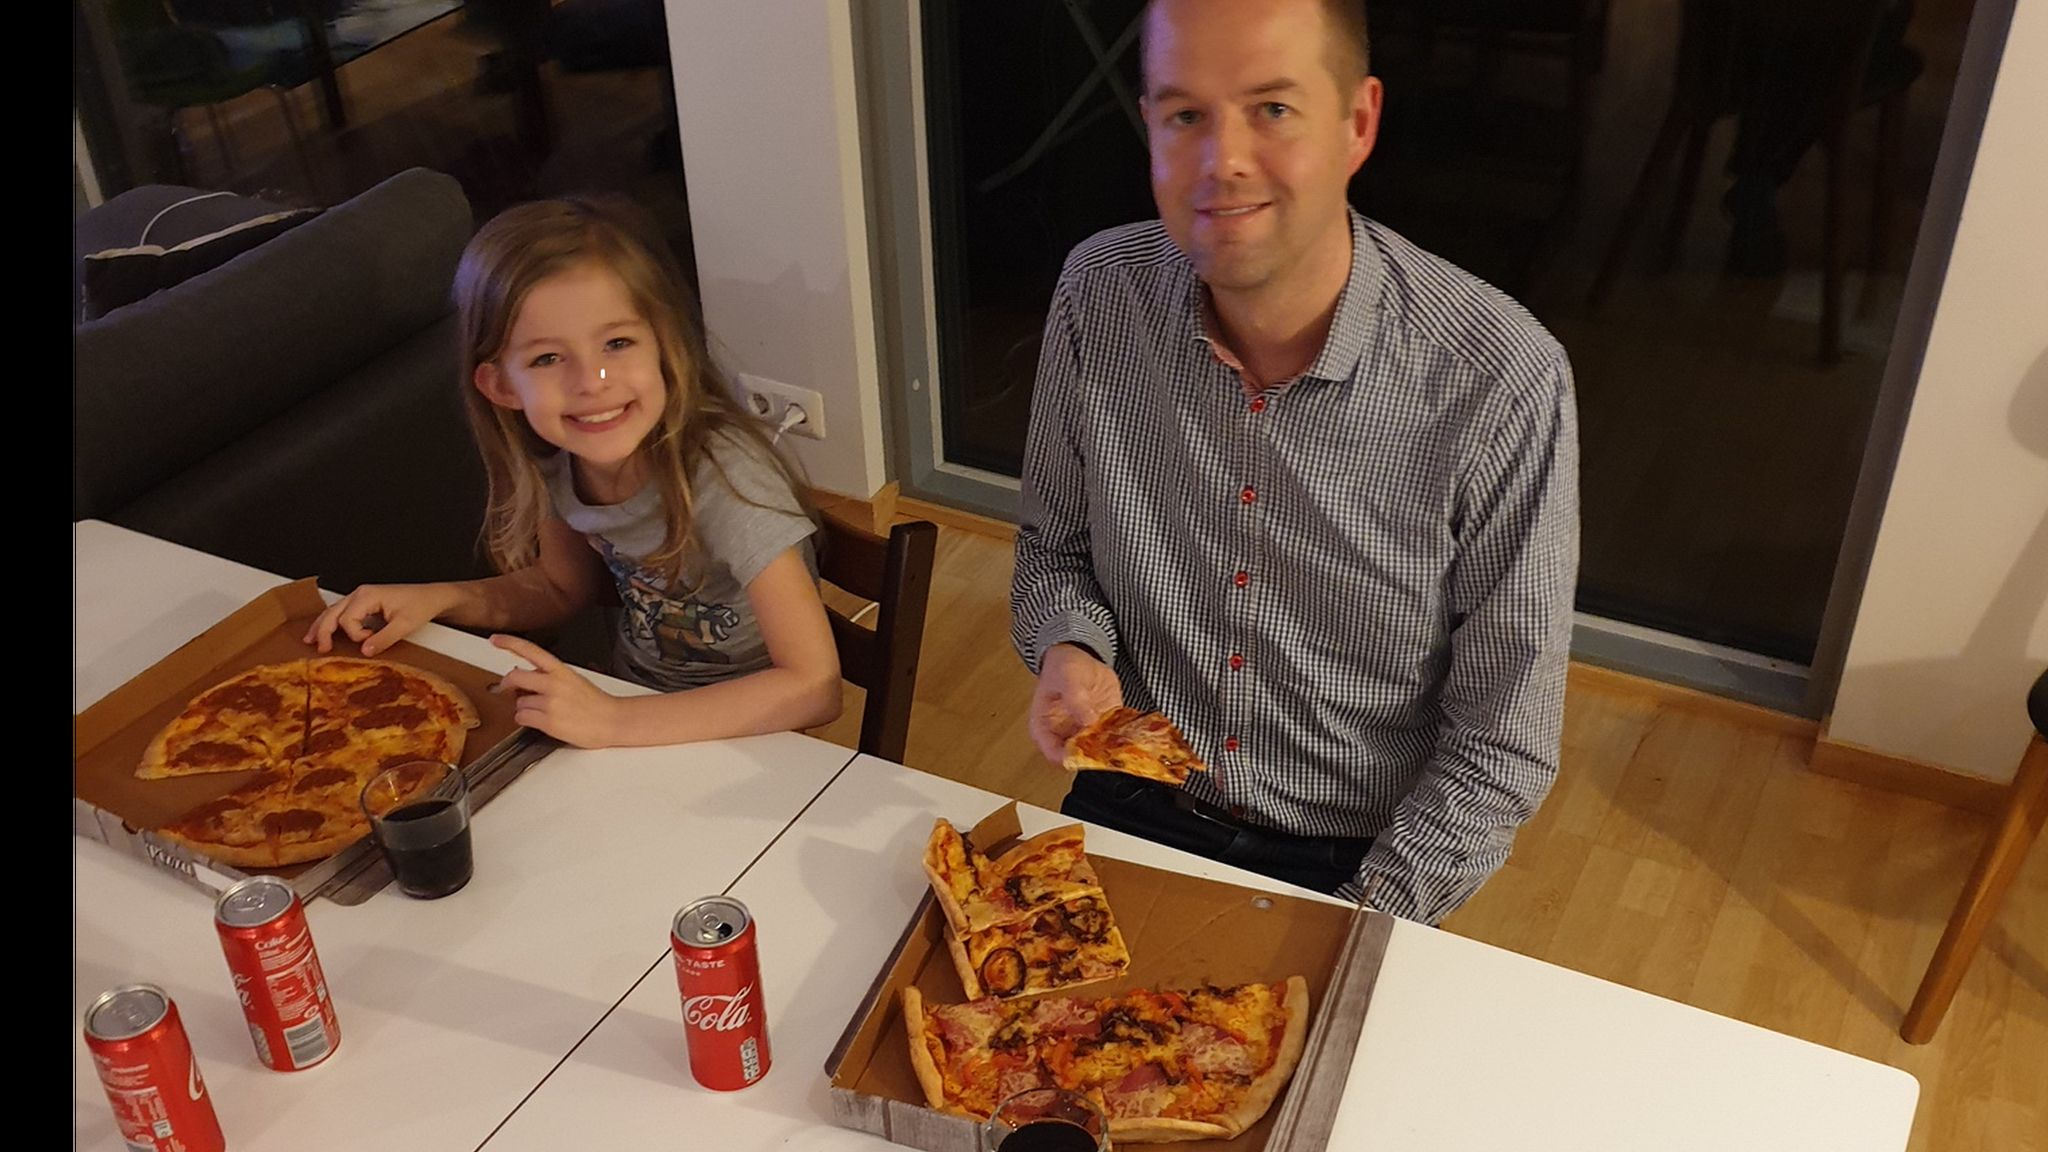 Anders Johansen marking the confirmation of his theory with his daughter Laura with a celebratory pizza